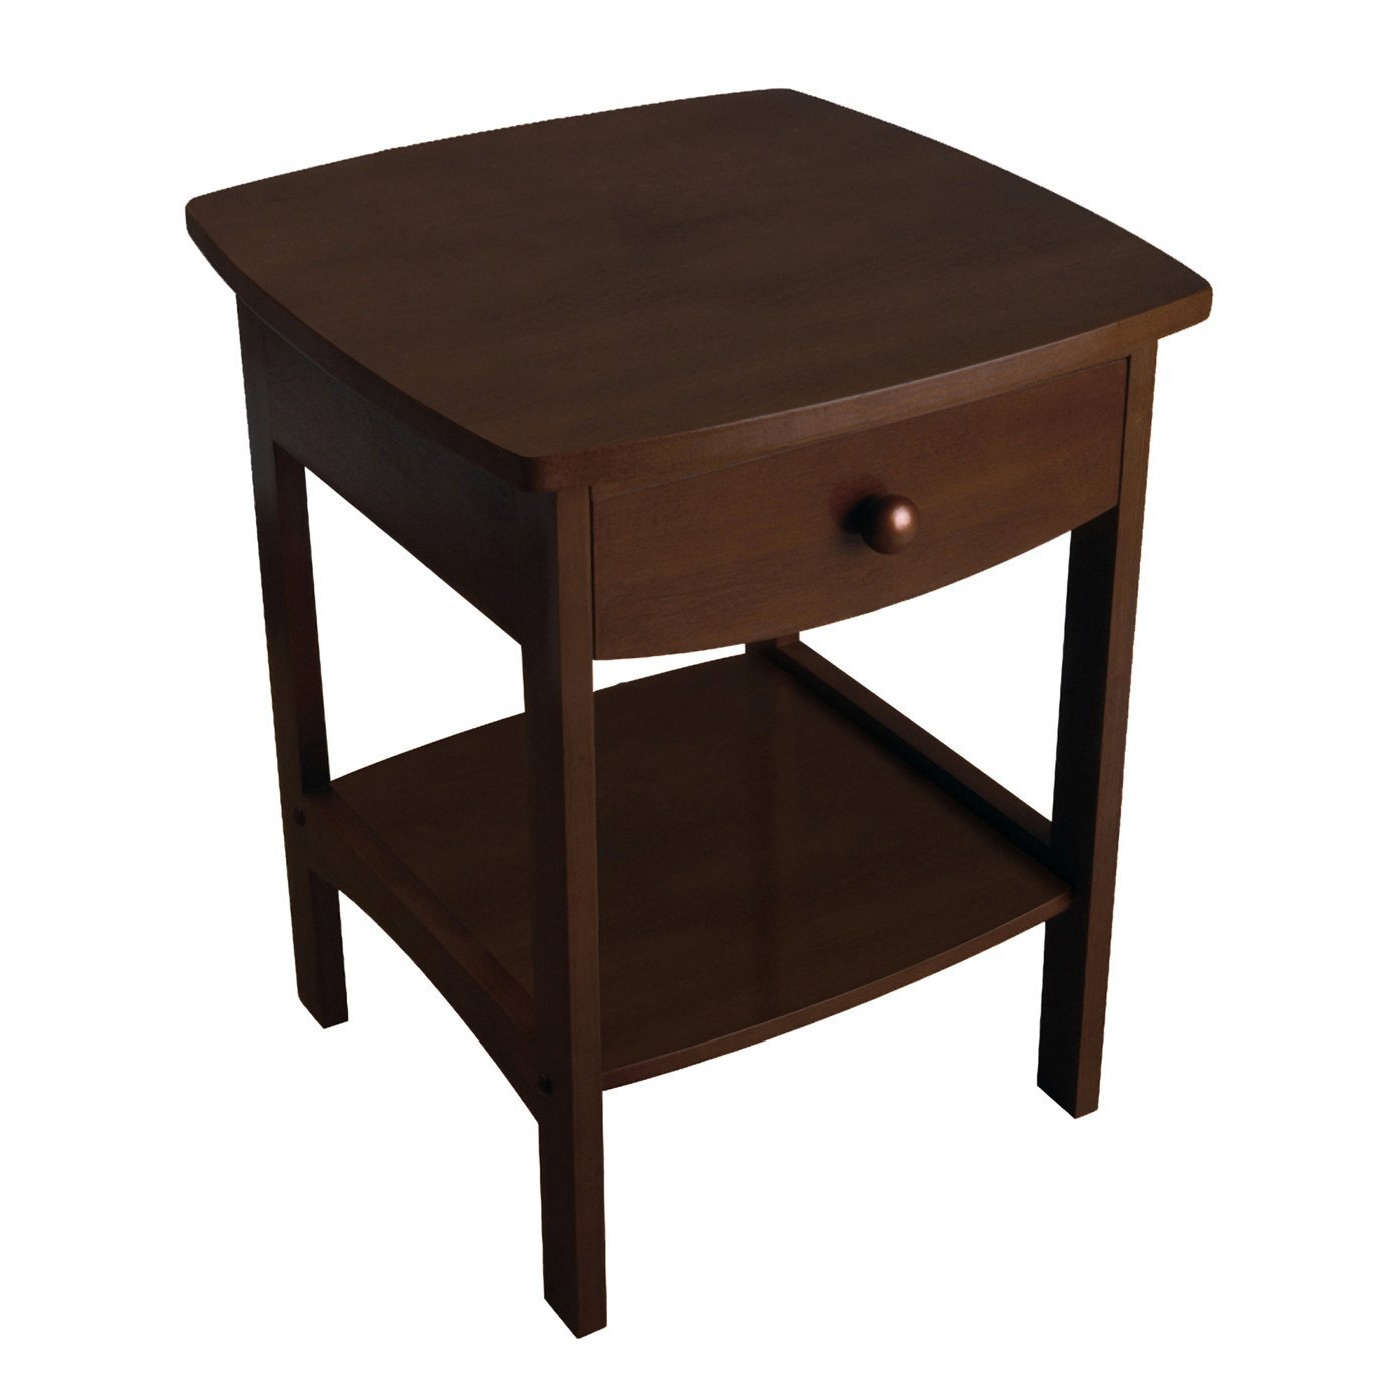 walnut finish accent table nightstand with one drawer drum stool battery operated end lamps coral chair big cloth round metal garden elastic covers decoration pieces for drawing